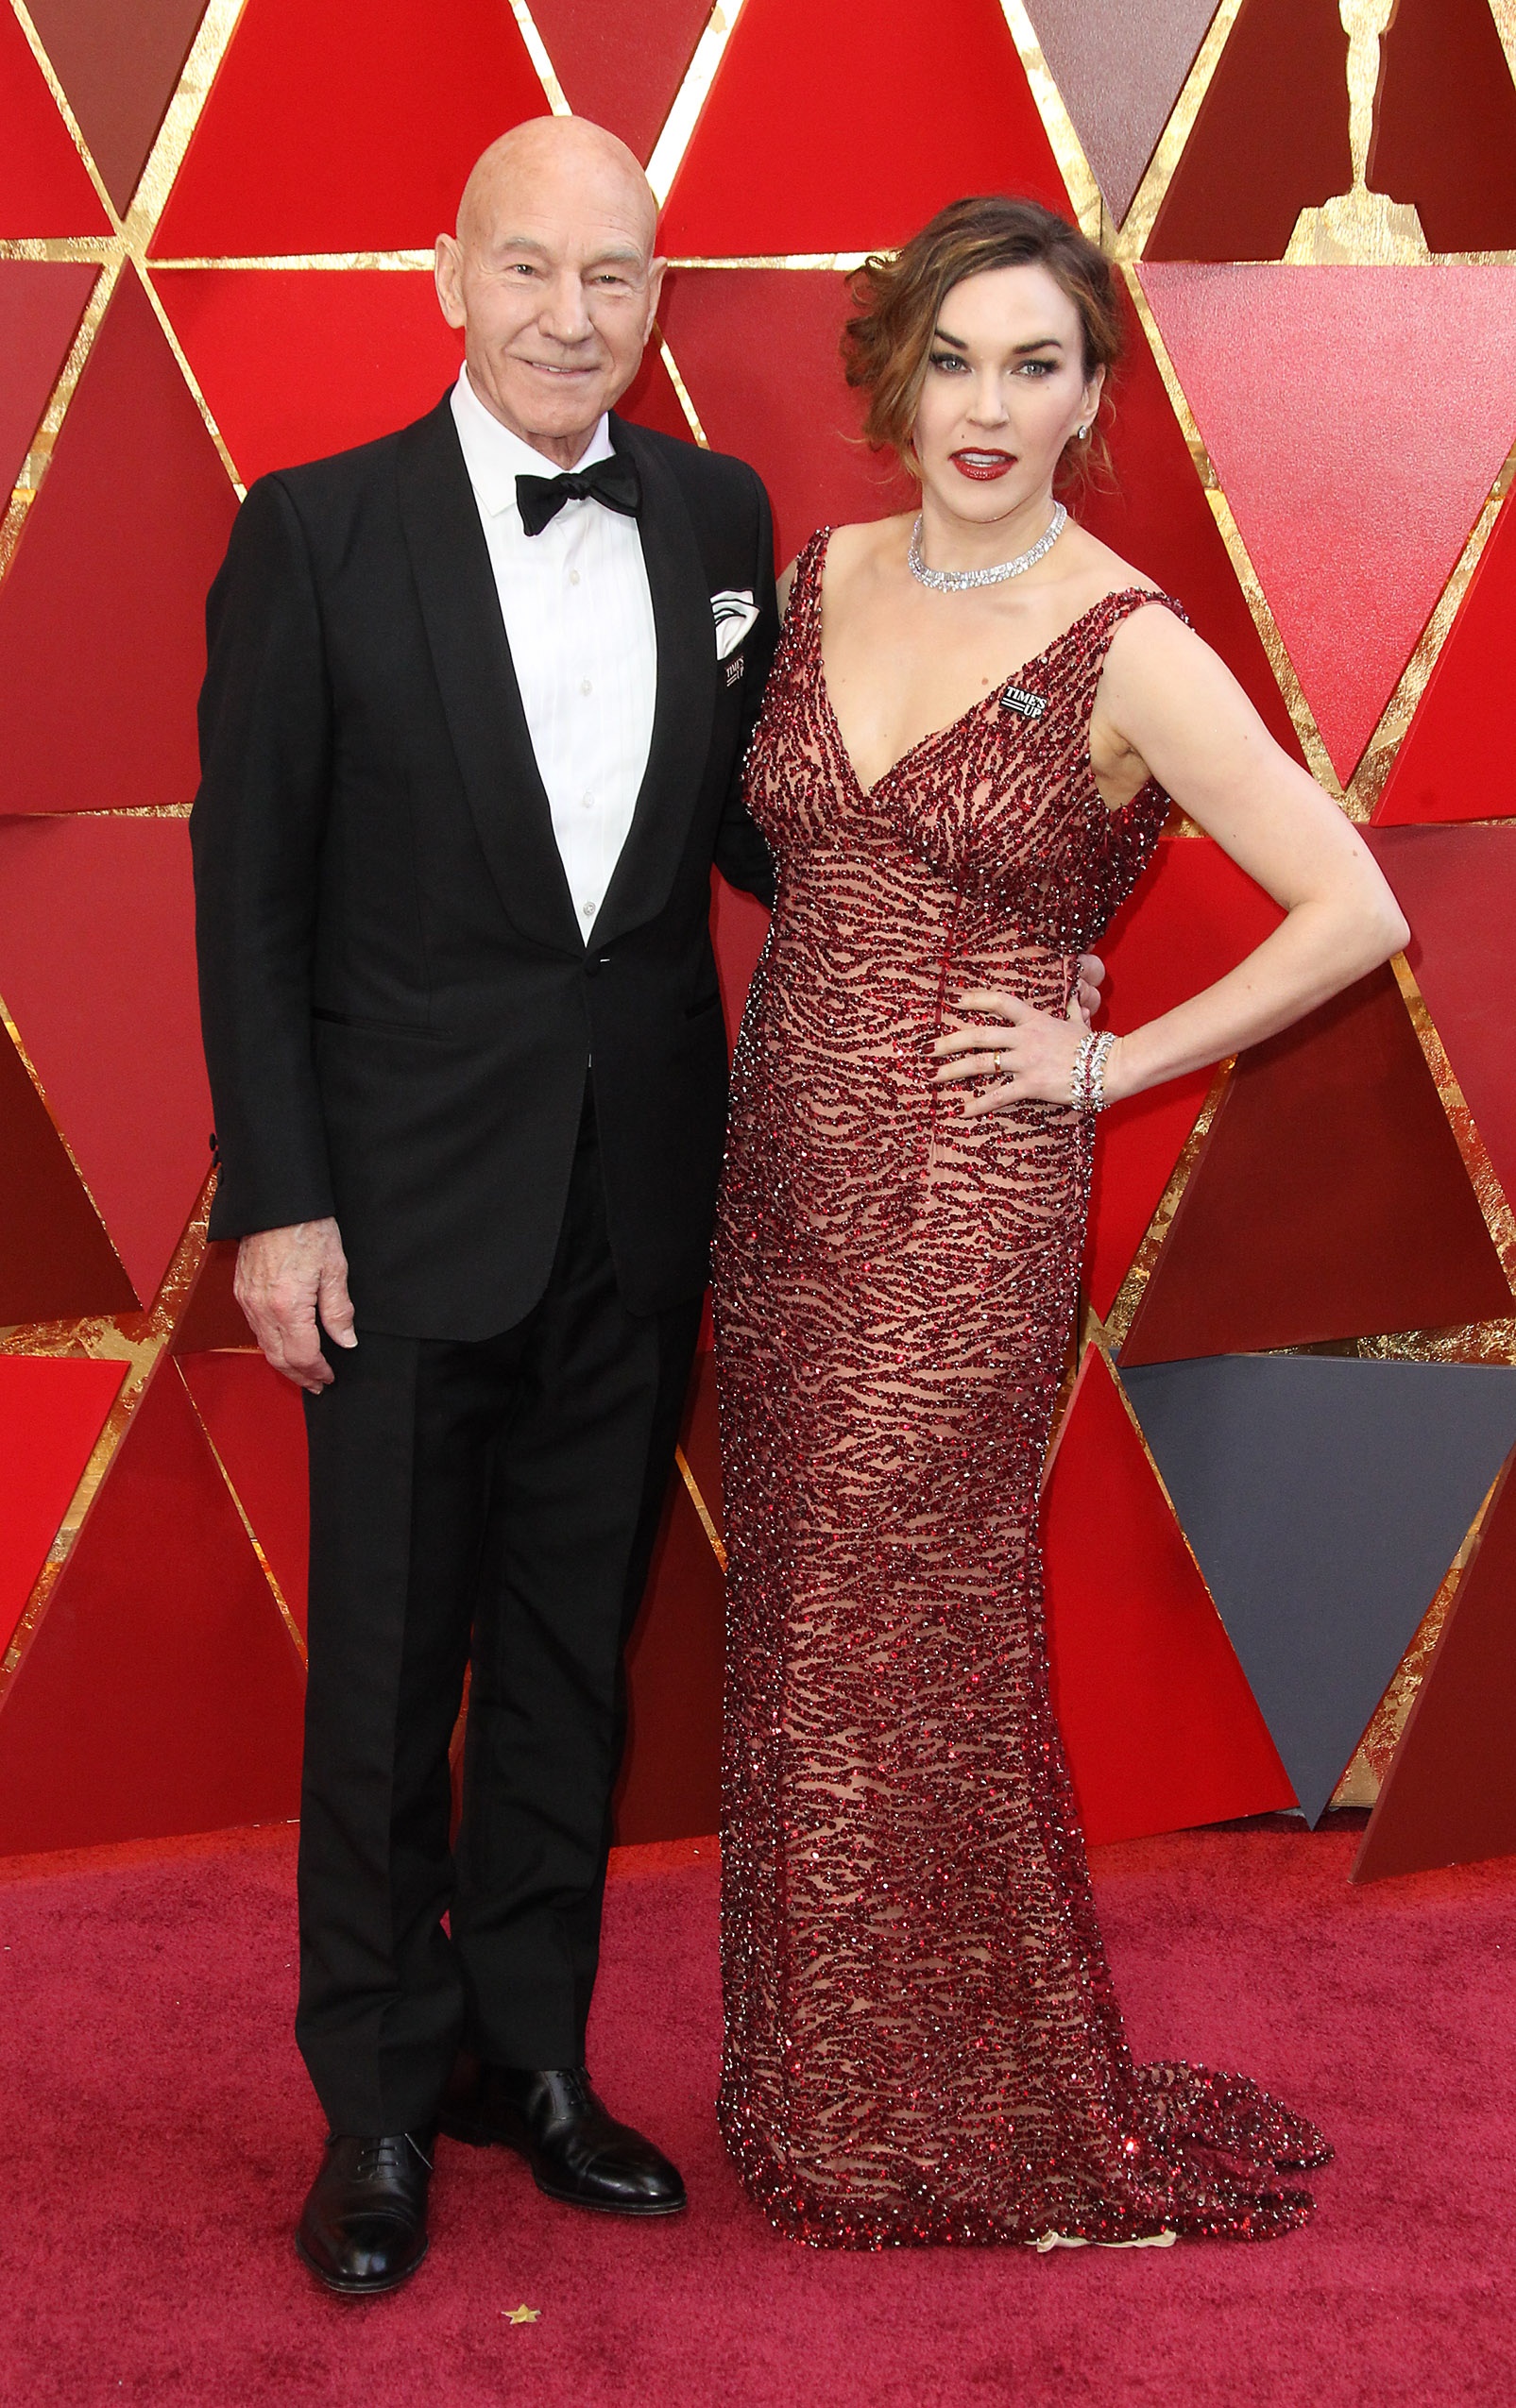 Patrick Stewart and Sunny Ozell{&amp;nbsp;}arrive at the 90th Annual Academy Awards (Oscars) held at the Dolby Theater in Hollywood, California. (Image: Adriana M. Barraza/WENN.com)<p></p>